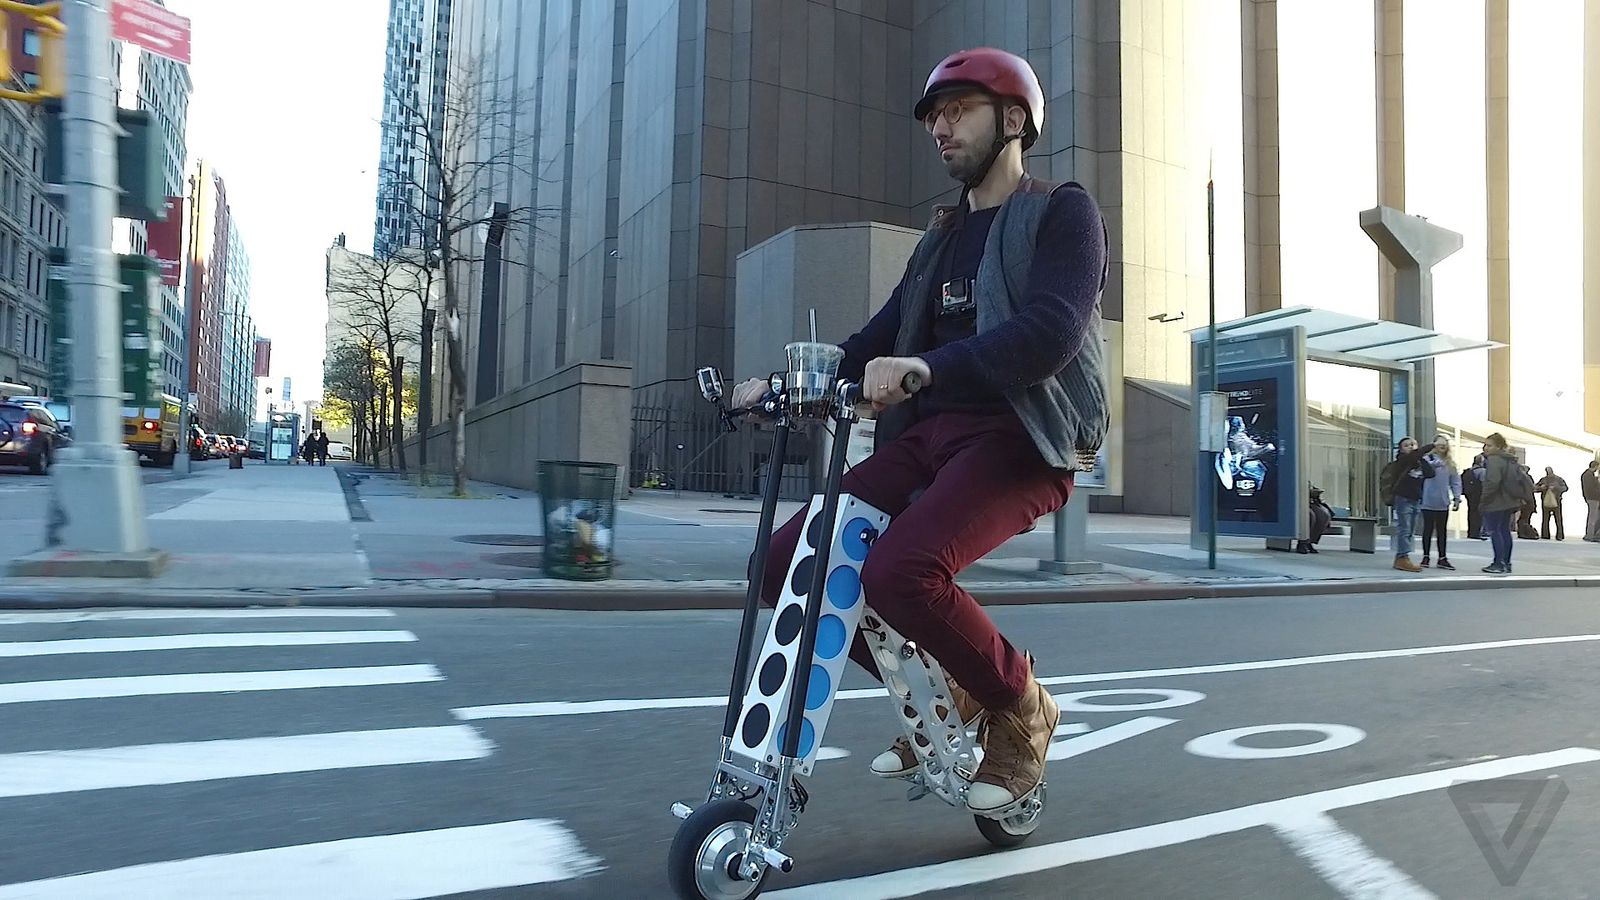 This Electric Scooter Is The Ultimate Hipster Dad Chariot